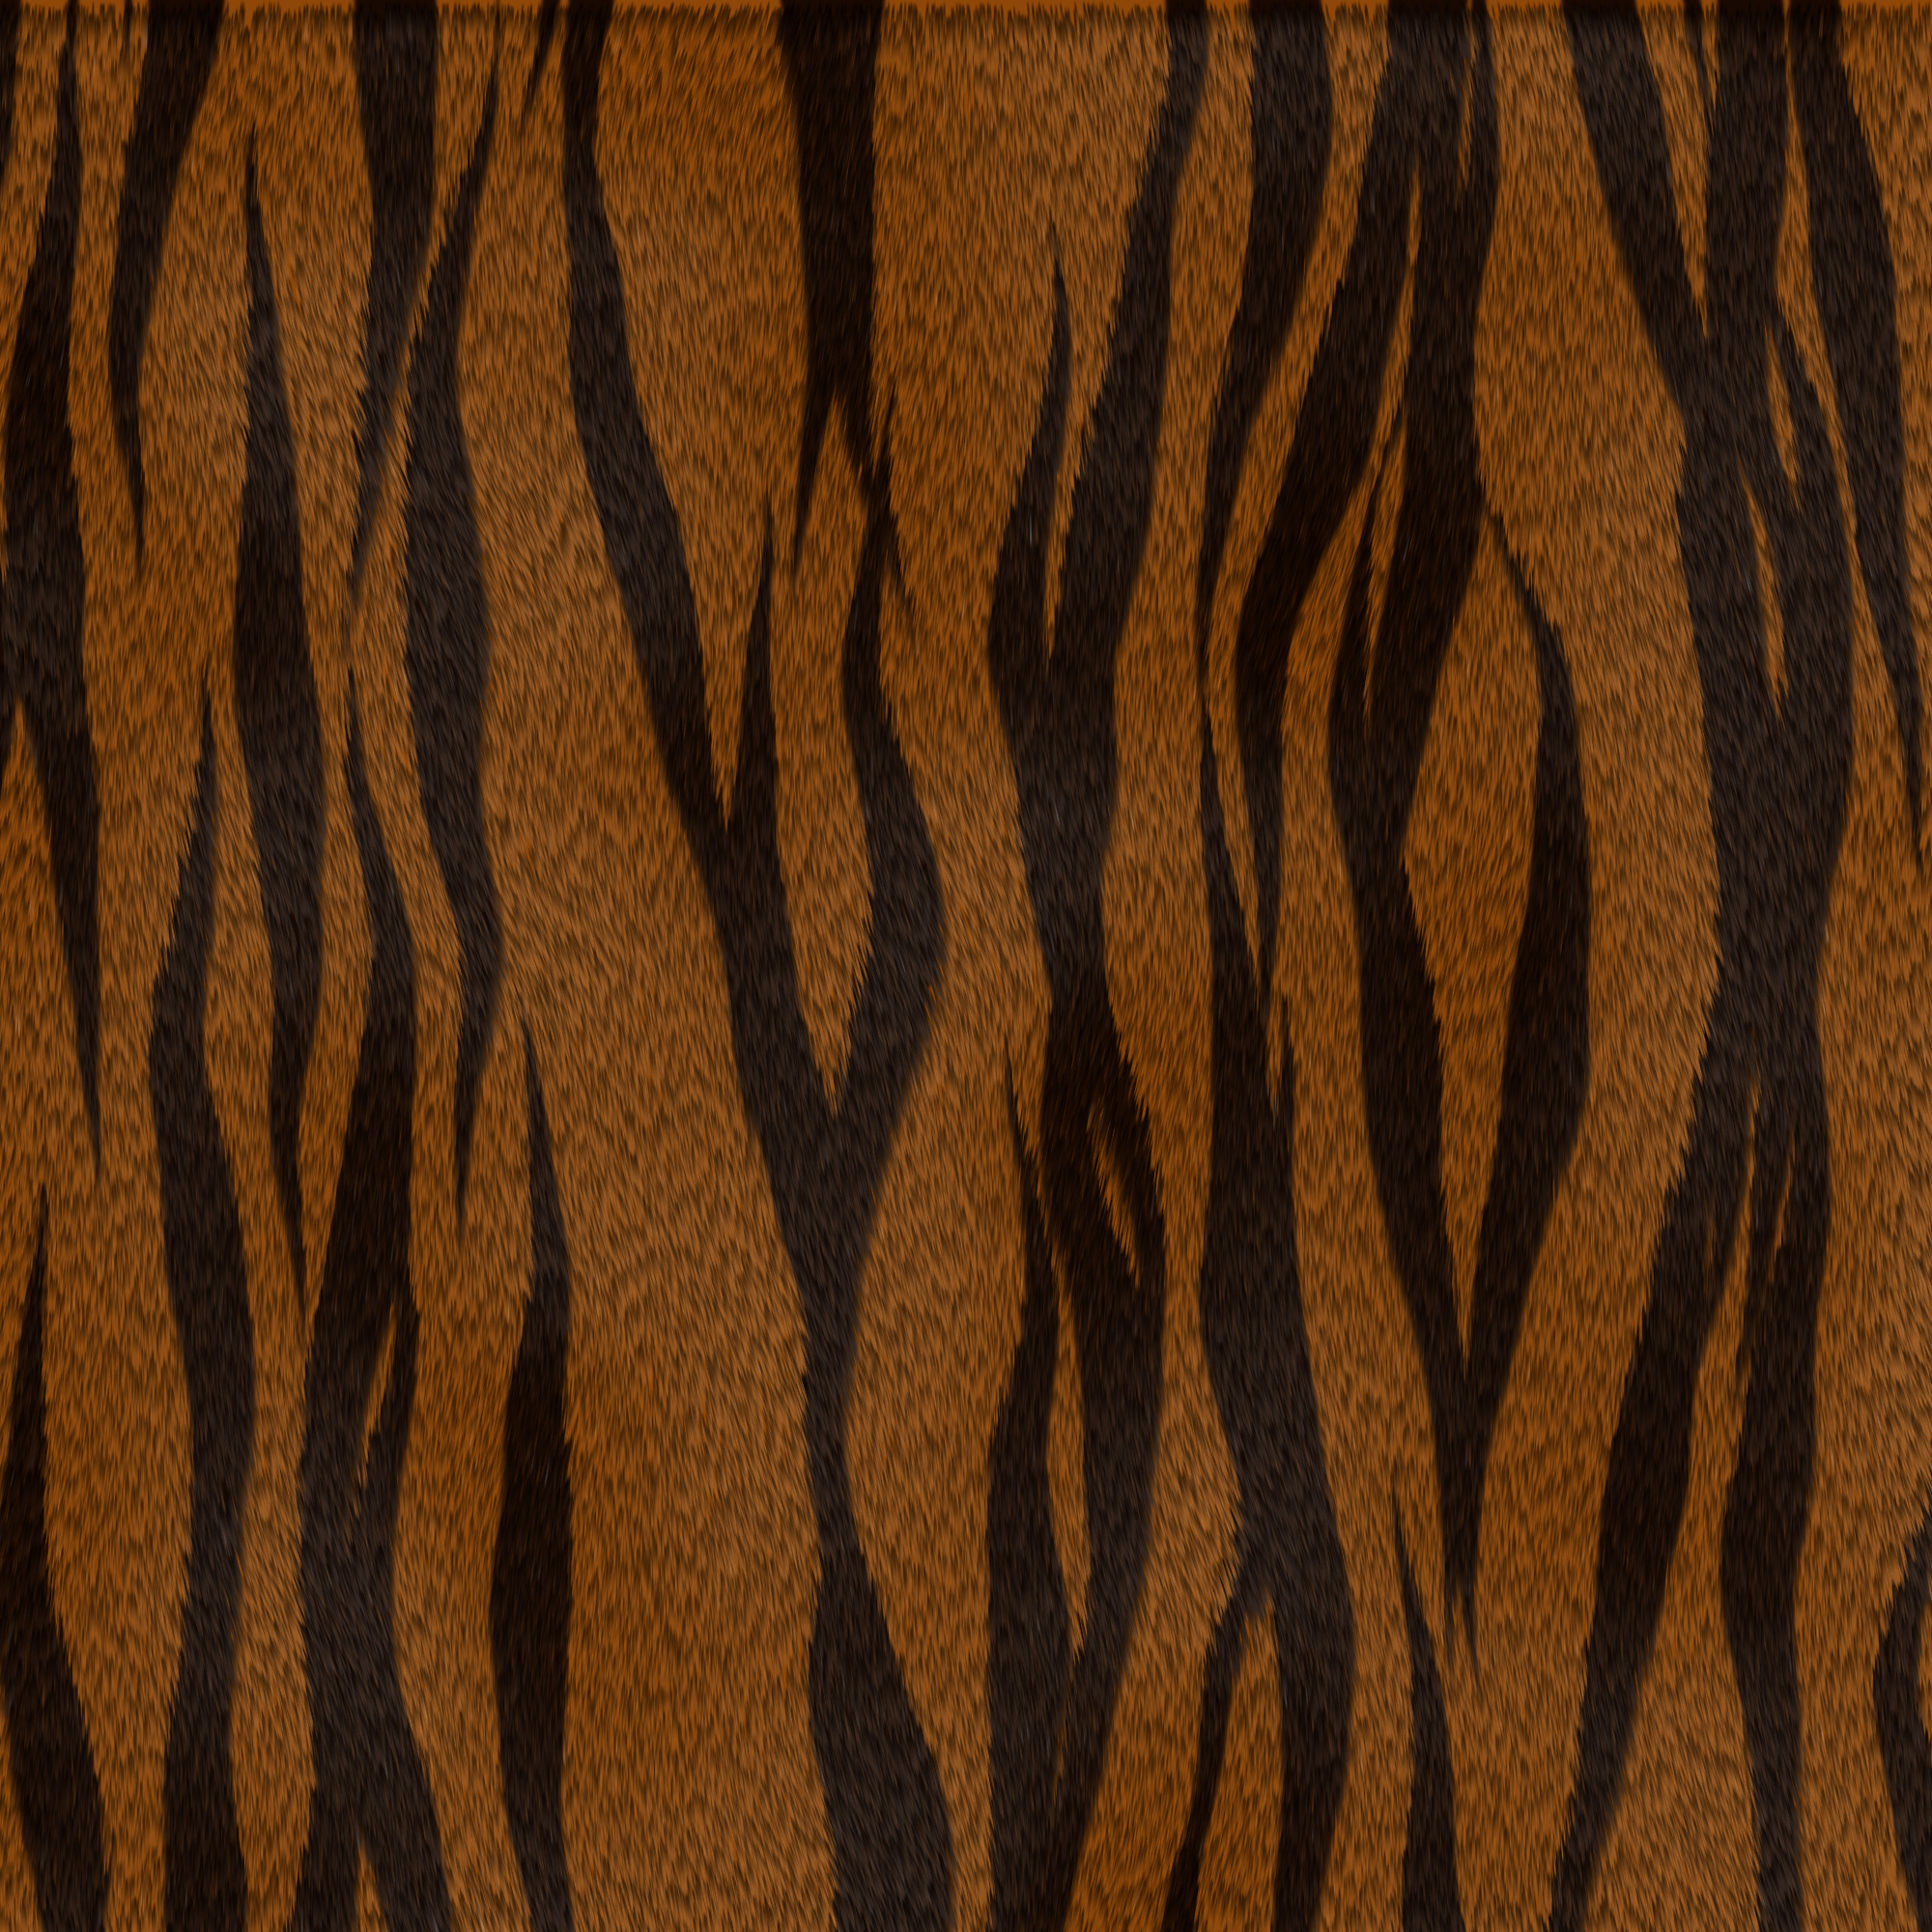 skin, tiger animal texture, background, skin animal texture, background